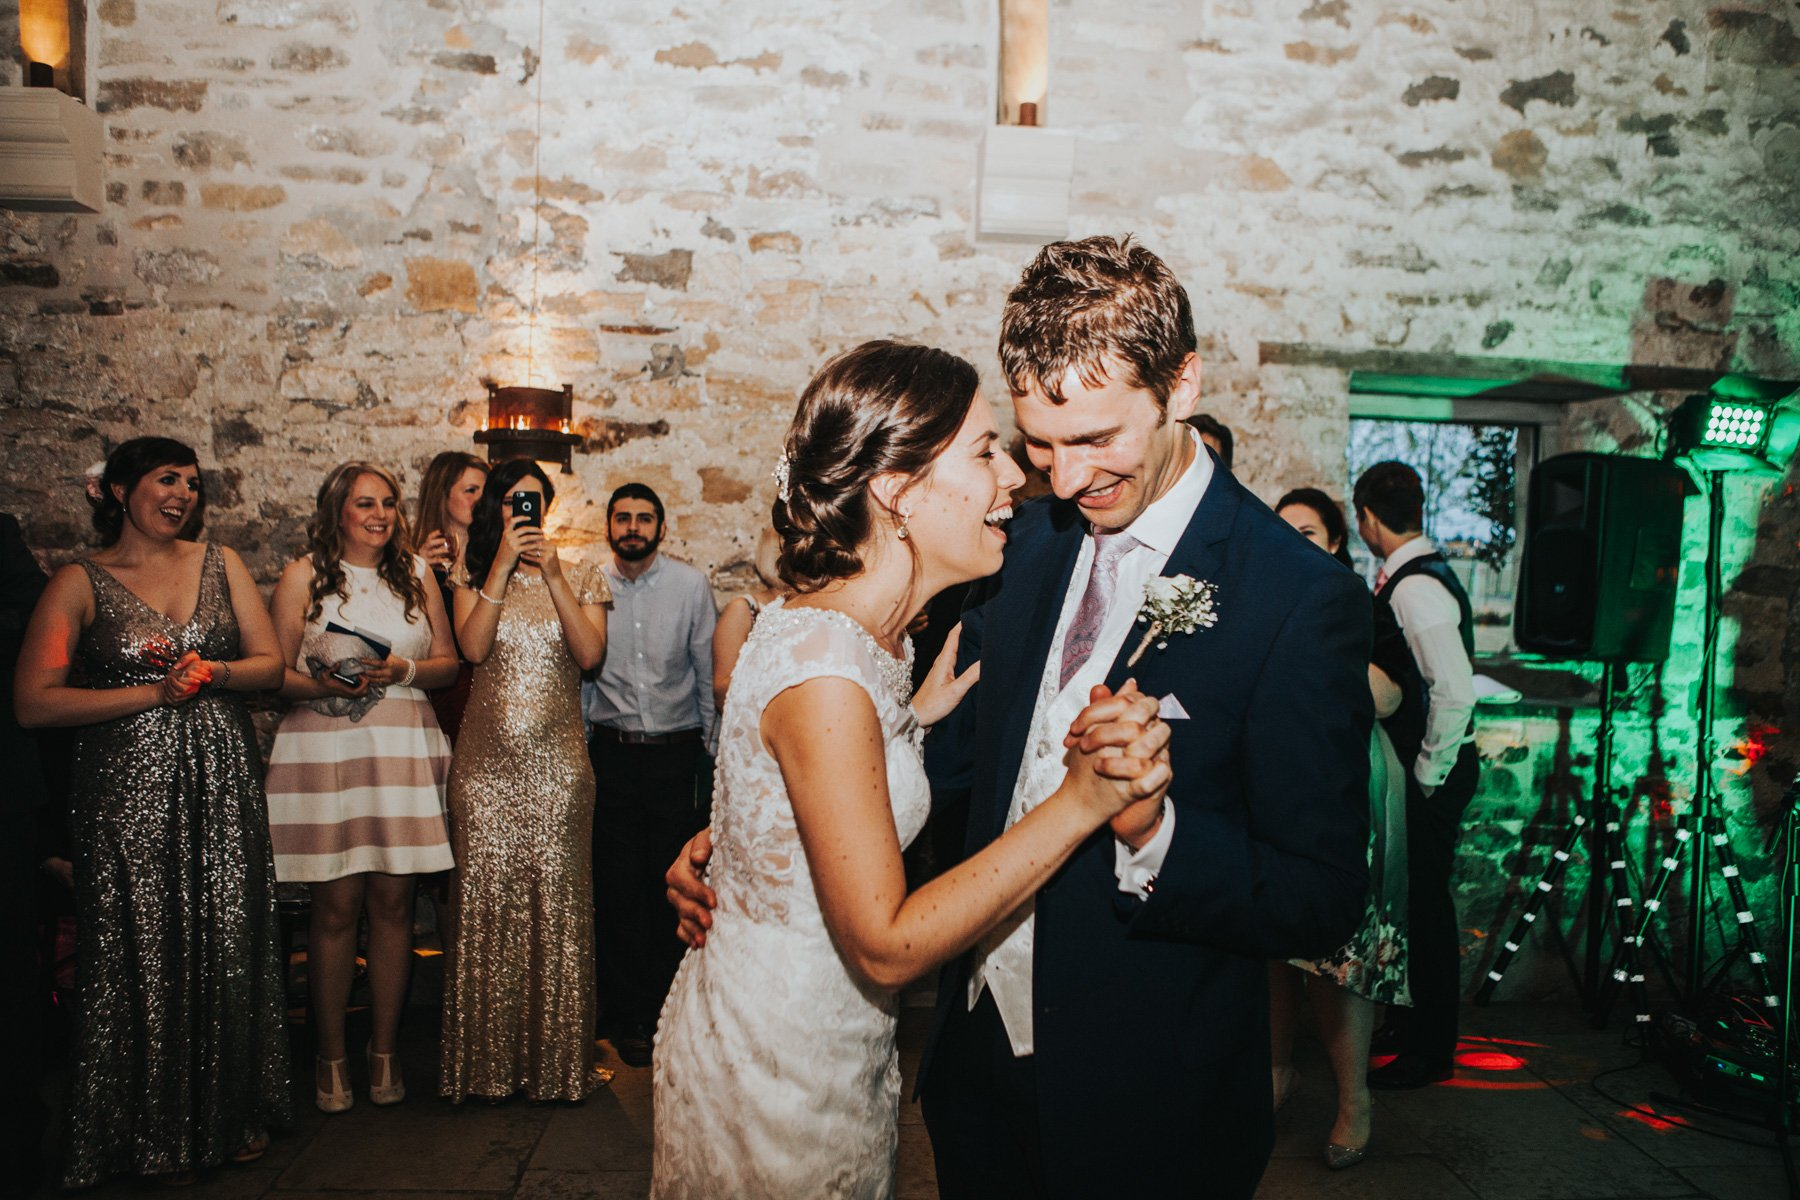 Healey Barn Wedding Photographer - Bride and Groom's first dance